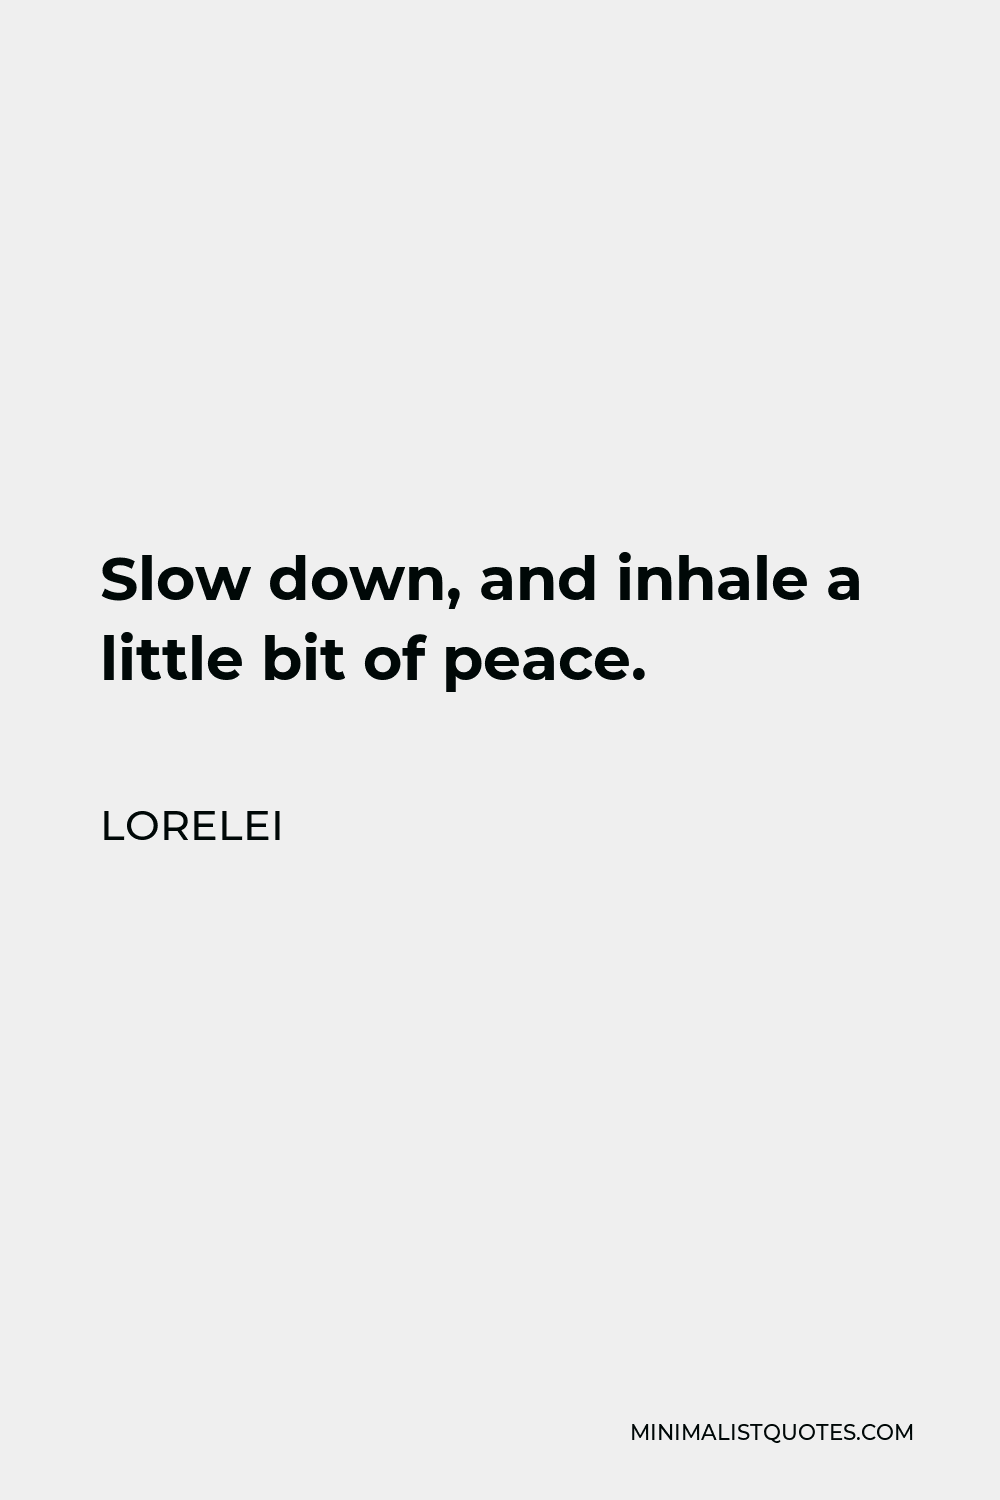 Lorelei Quote - Slow down, and inhale a little bit of peace.